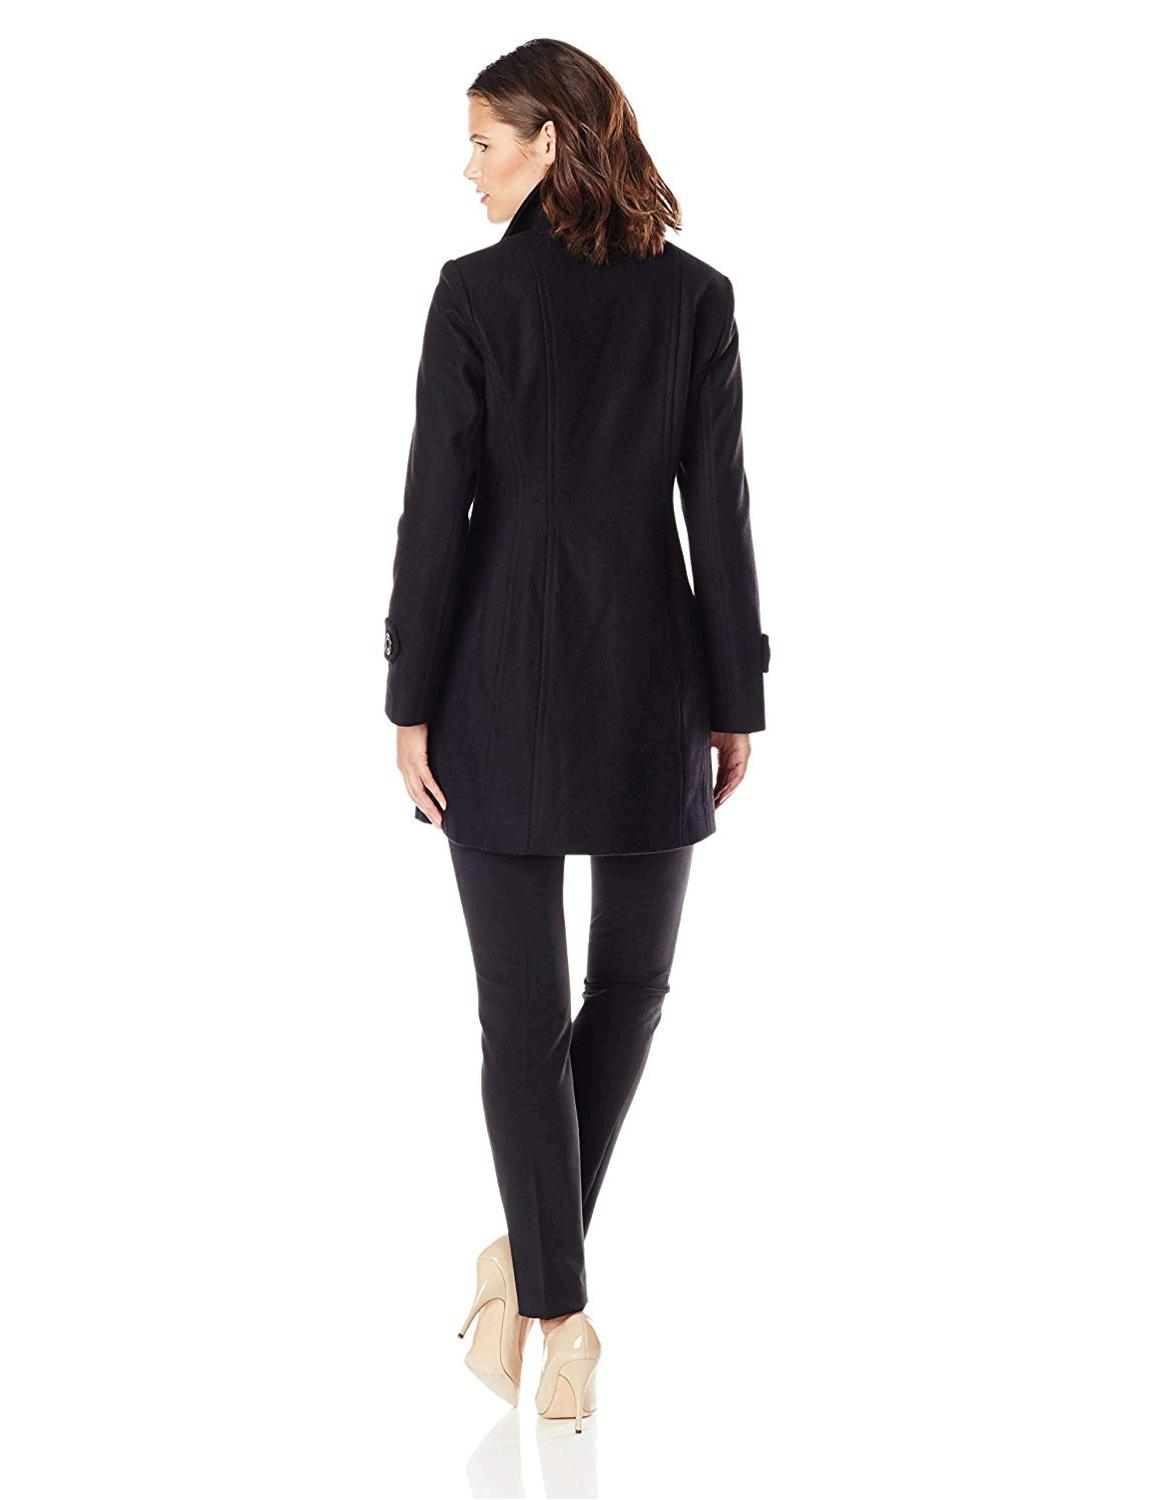 Anne Klein Women's Classic Double Breasted Wool Coat, Black,, Black, Size Small